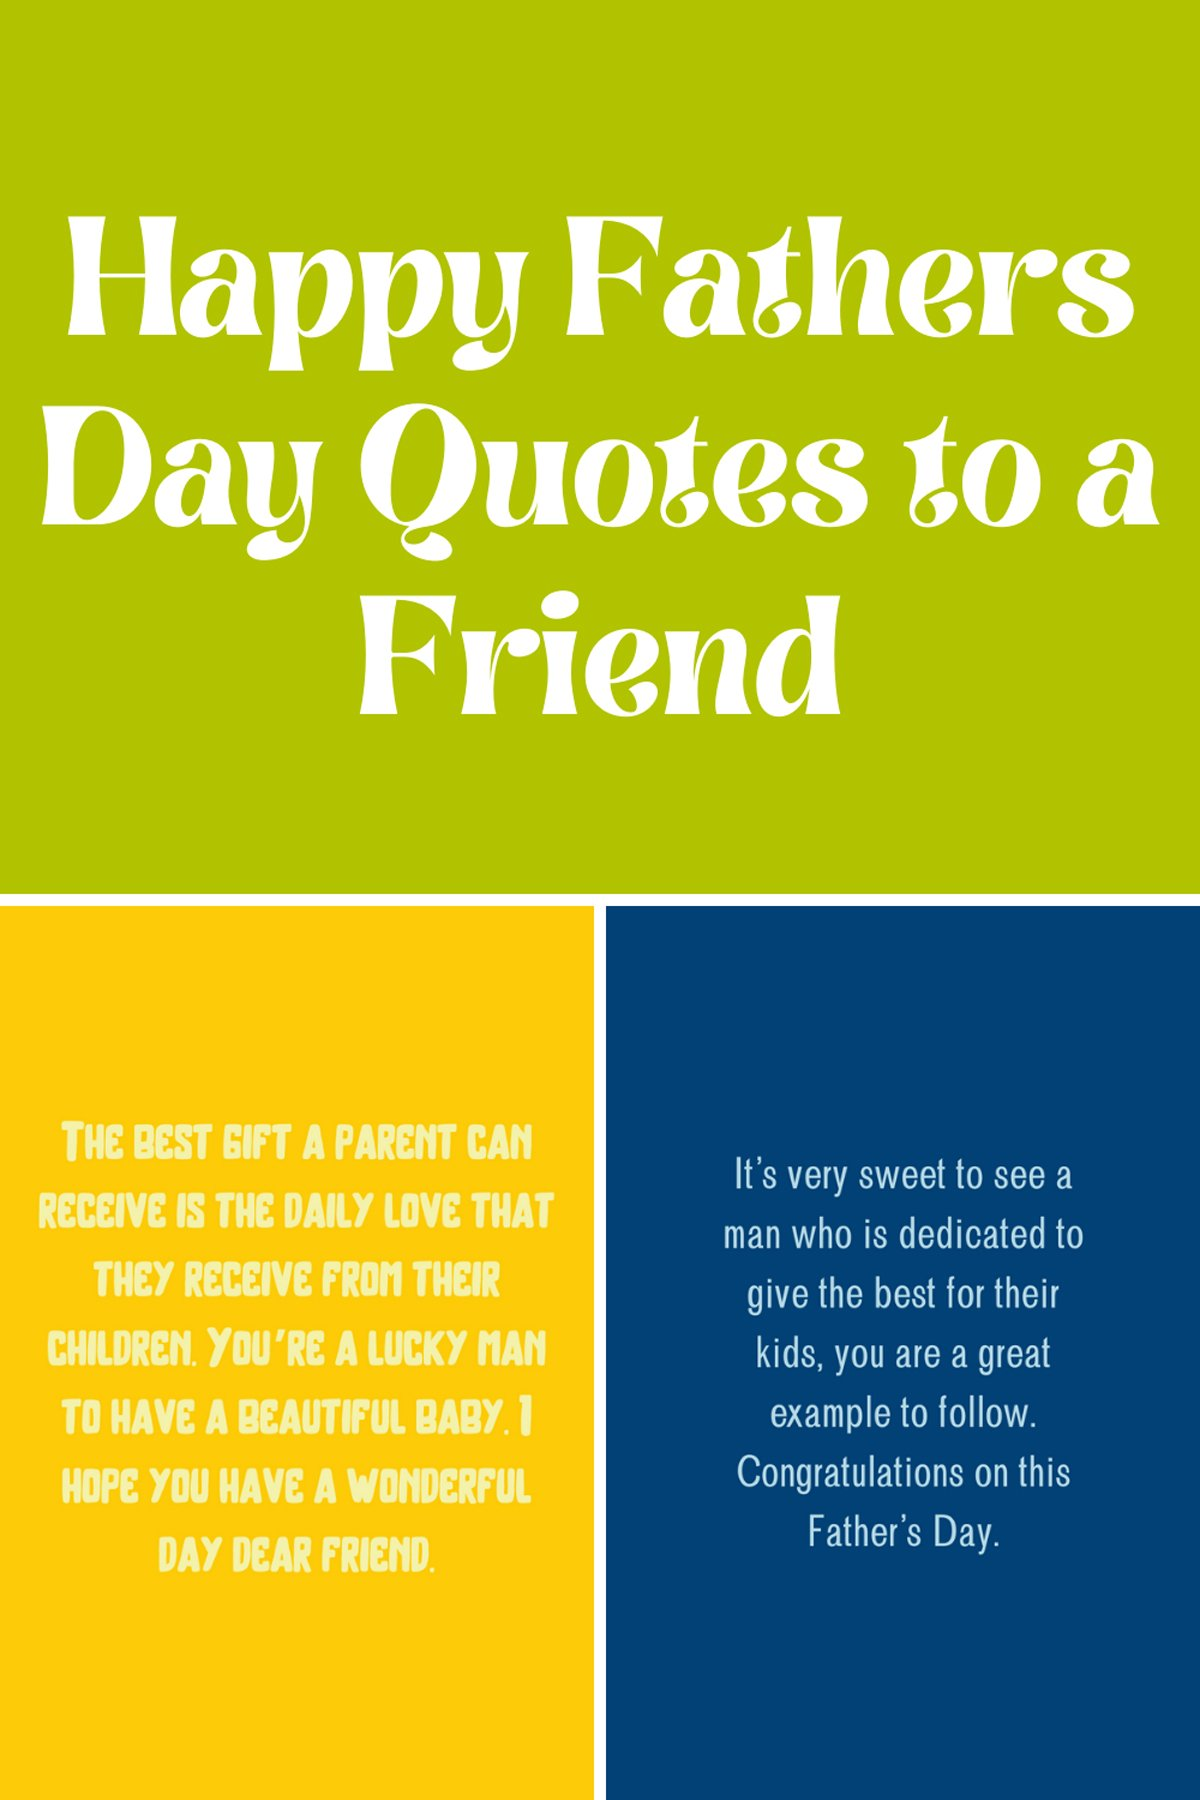 183 Happy Fathers Day Quotes to a Friend